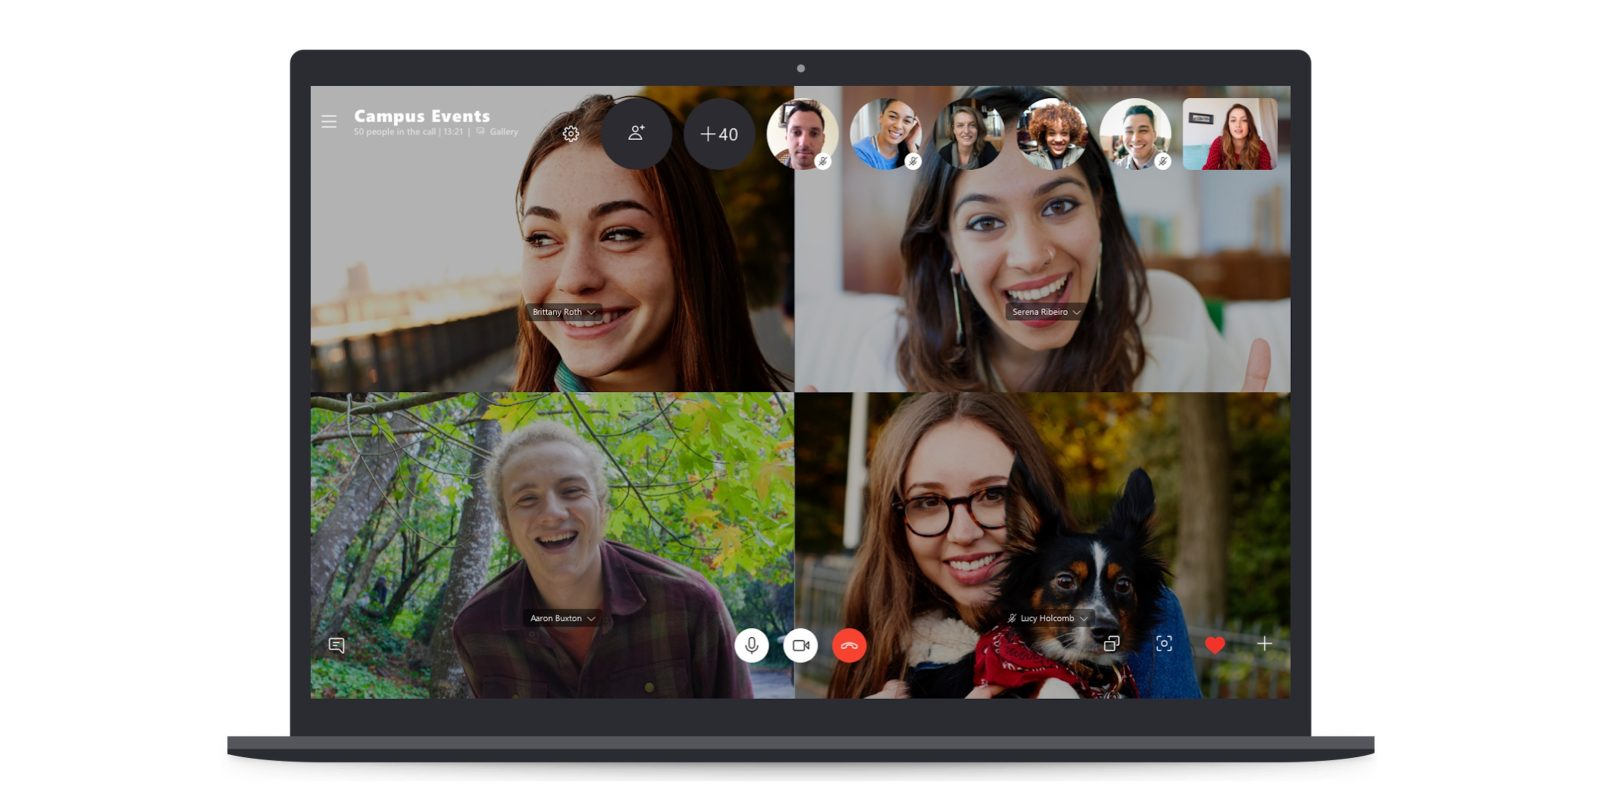 Skype Expands Group Video Calling To Up To 50 Users